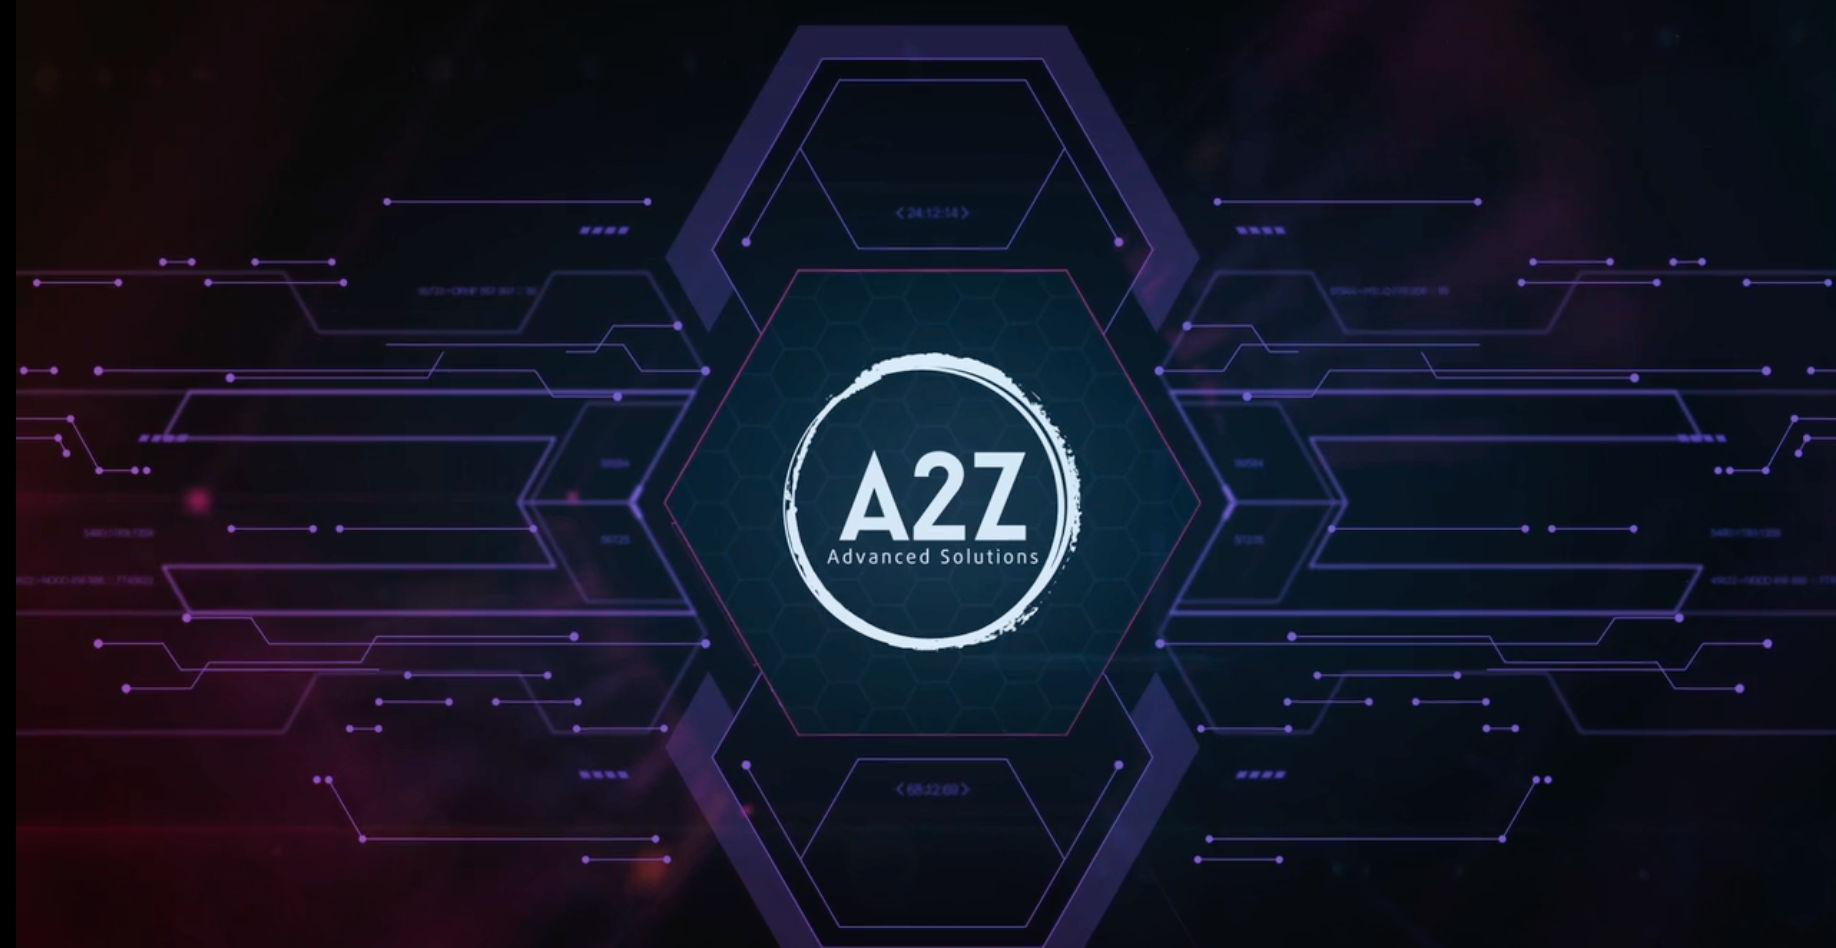 A2Z Announces Name Change